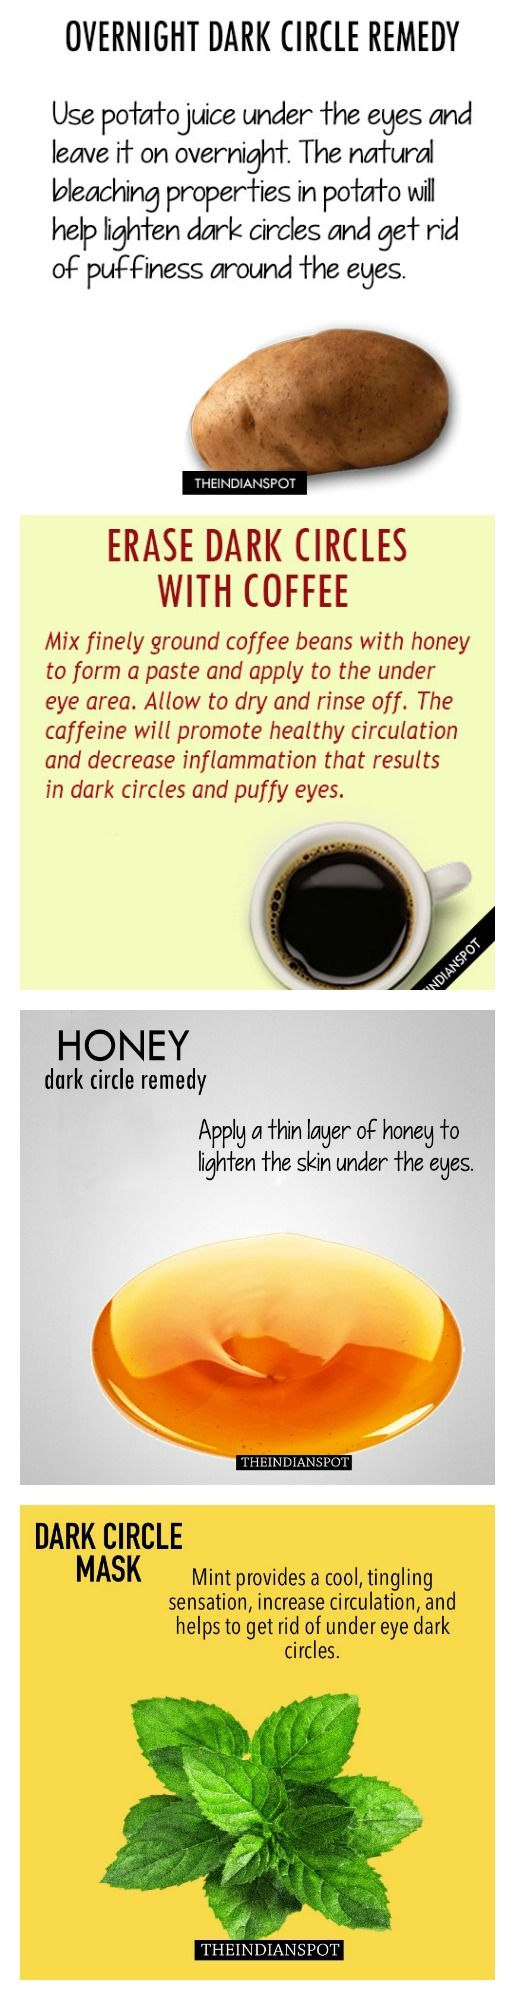 TOP 10 NATURAL CURES FOR DARK CIRCLES